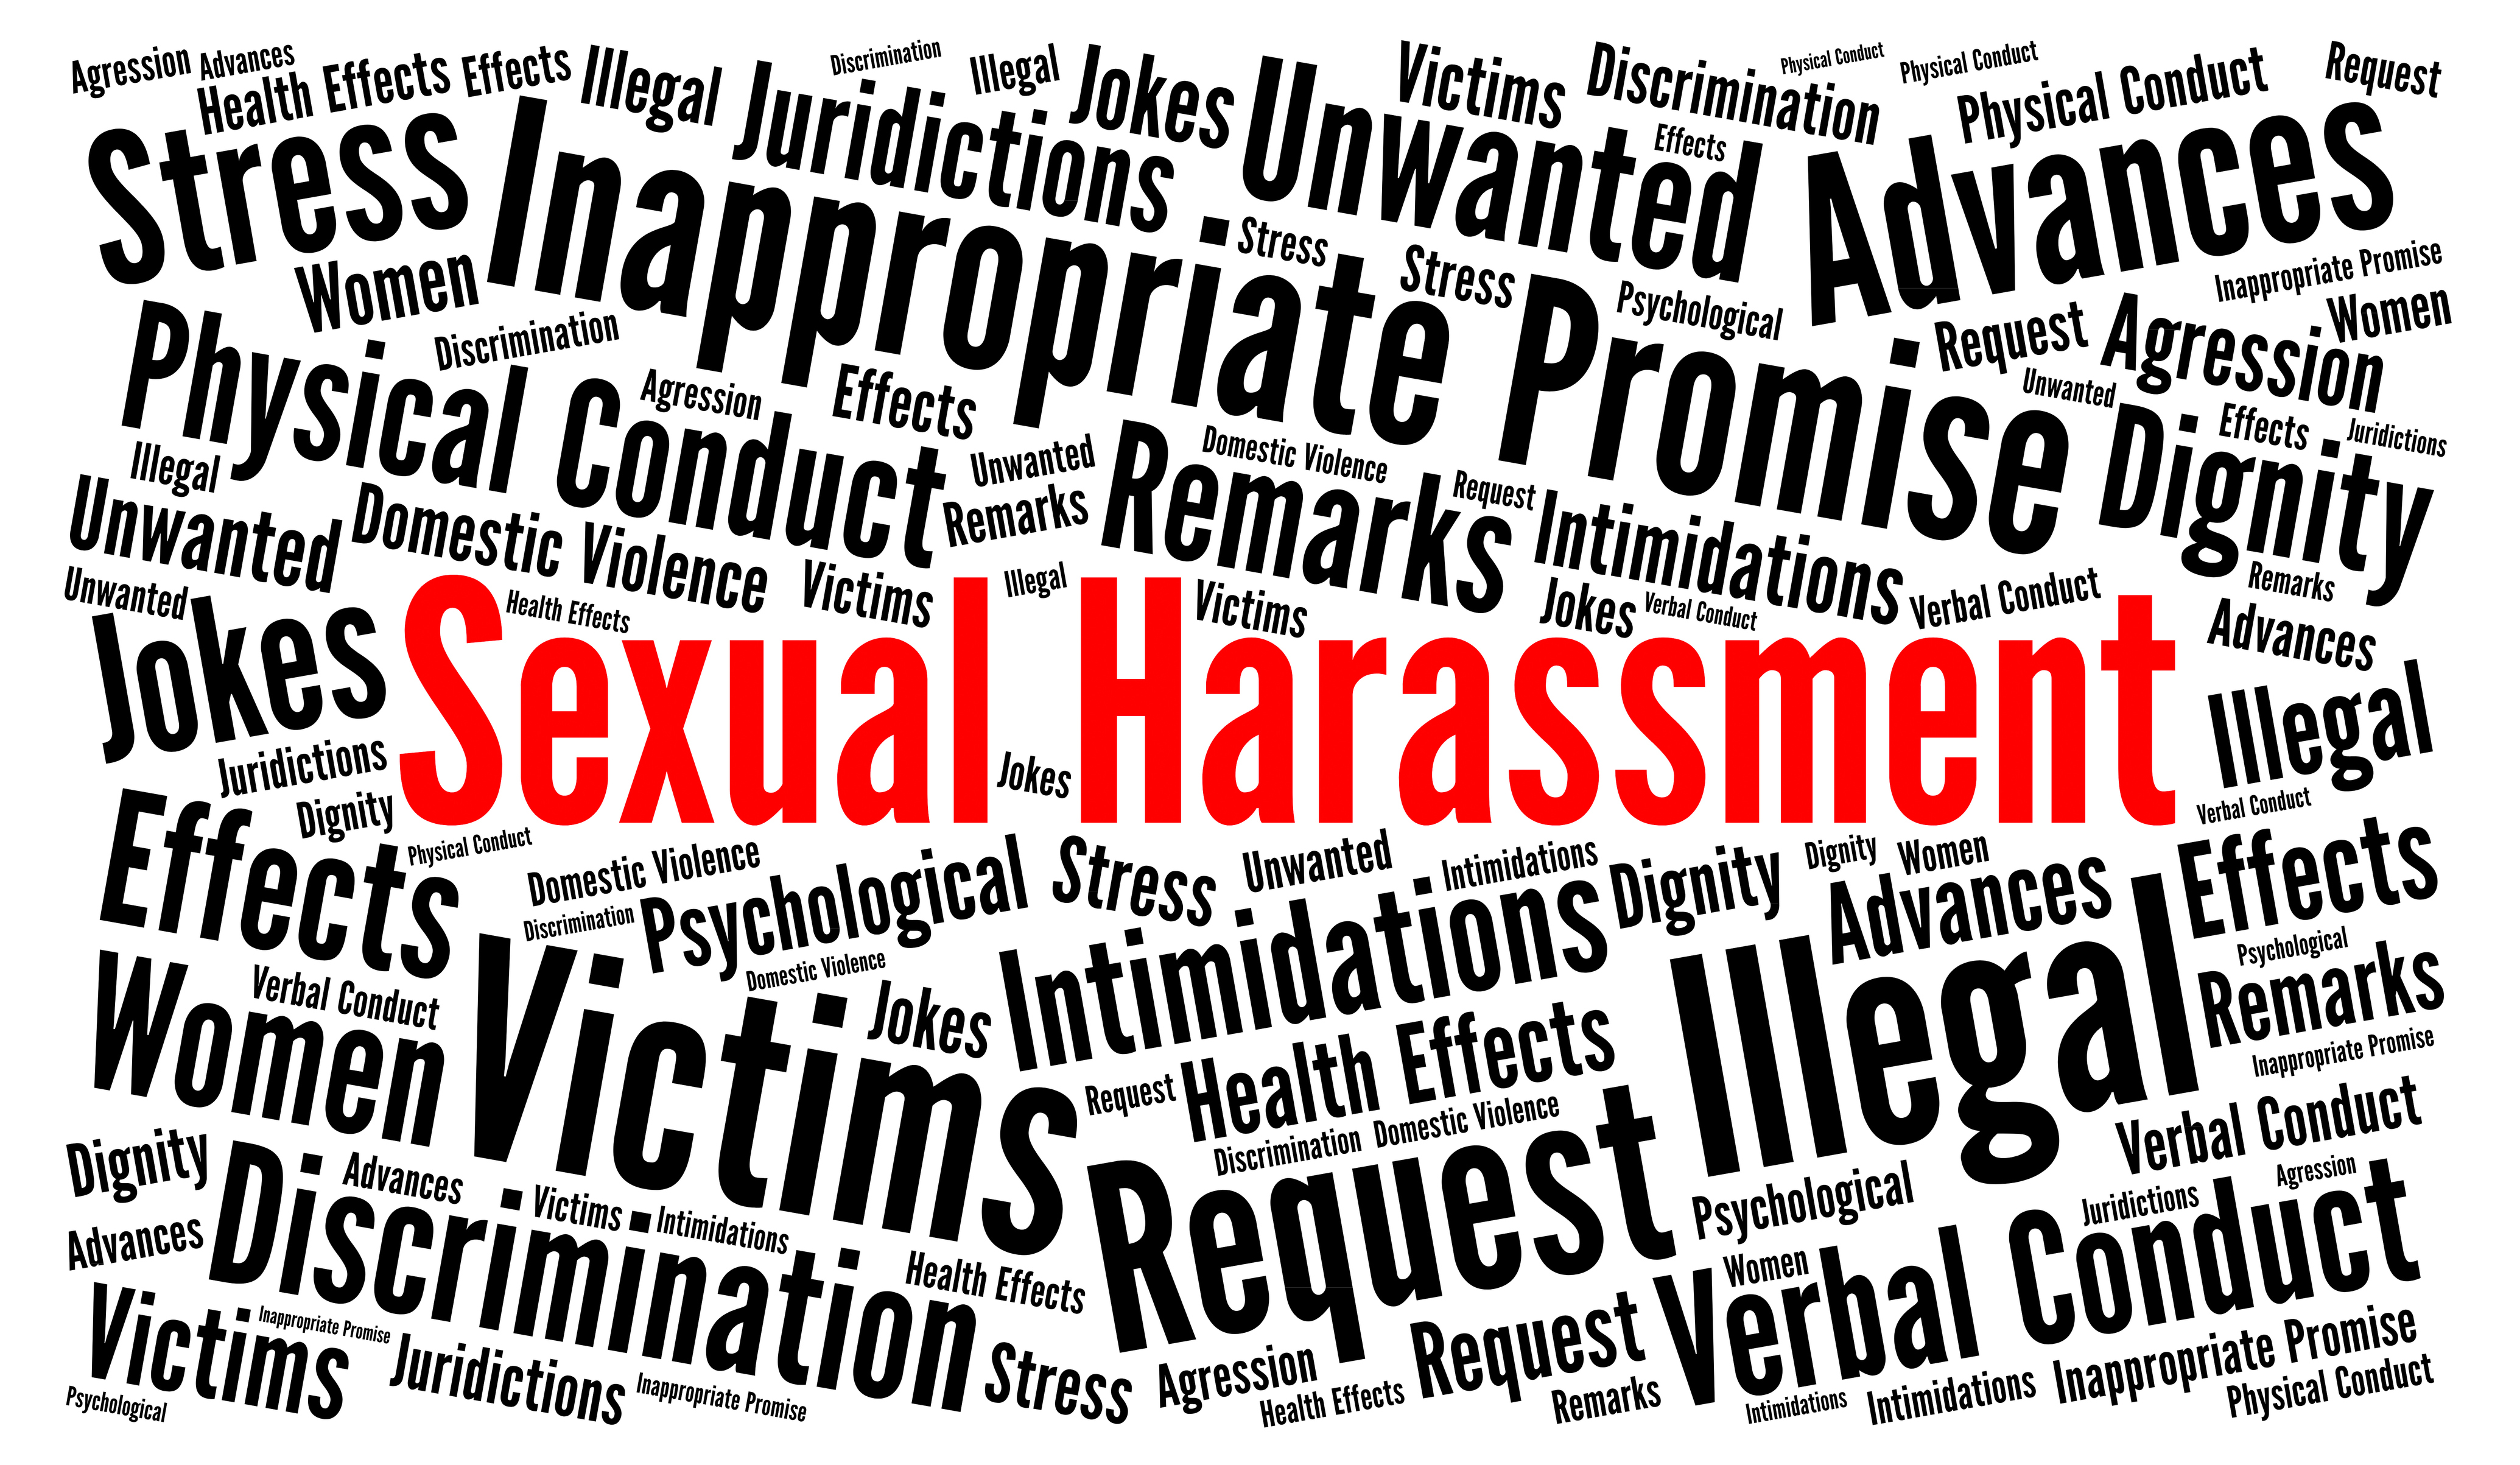 Taking Decisive Action to Address Sexual Harassment in